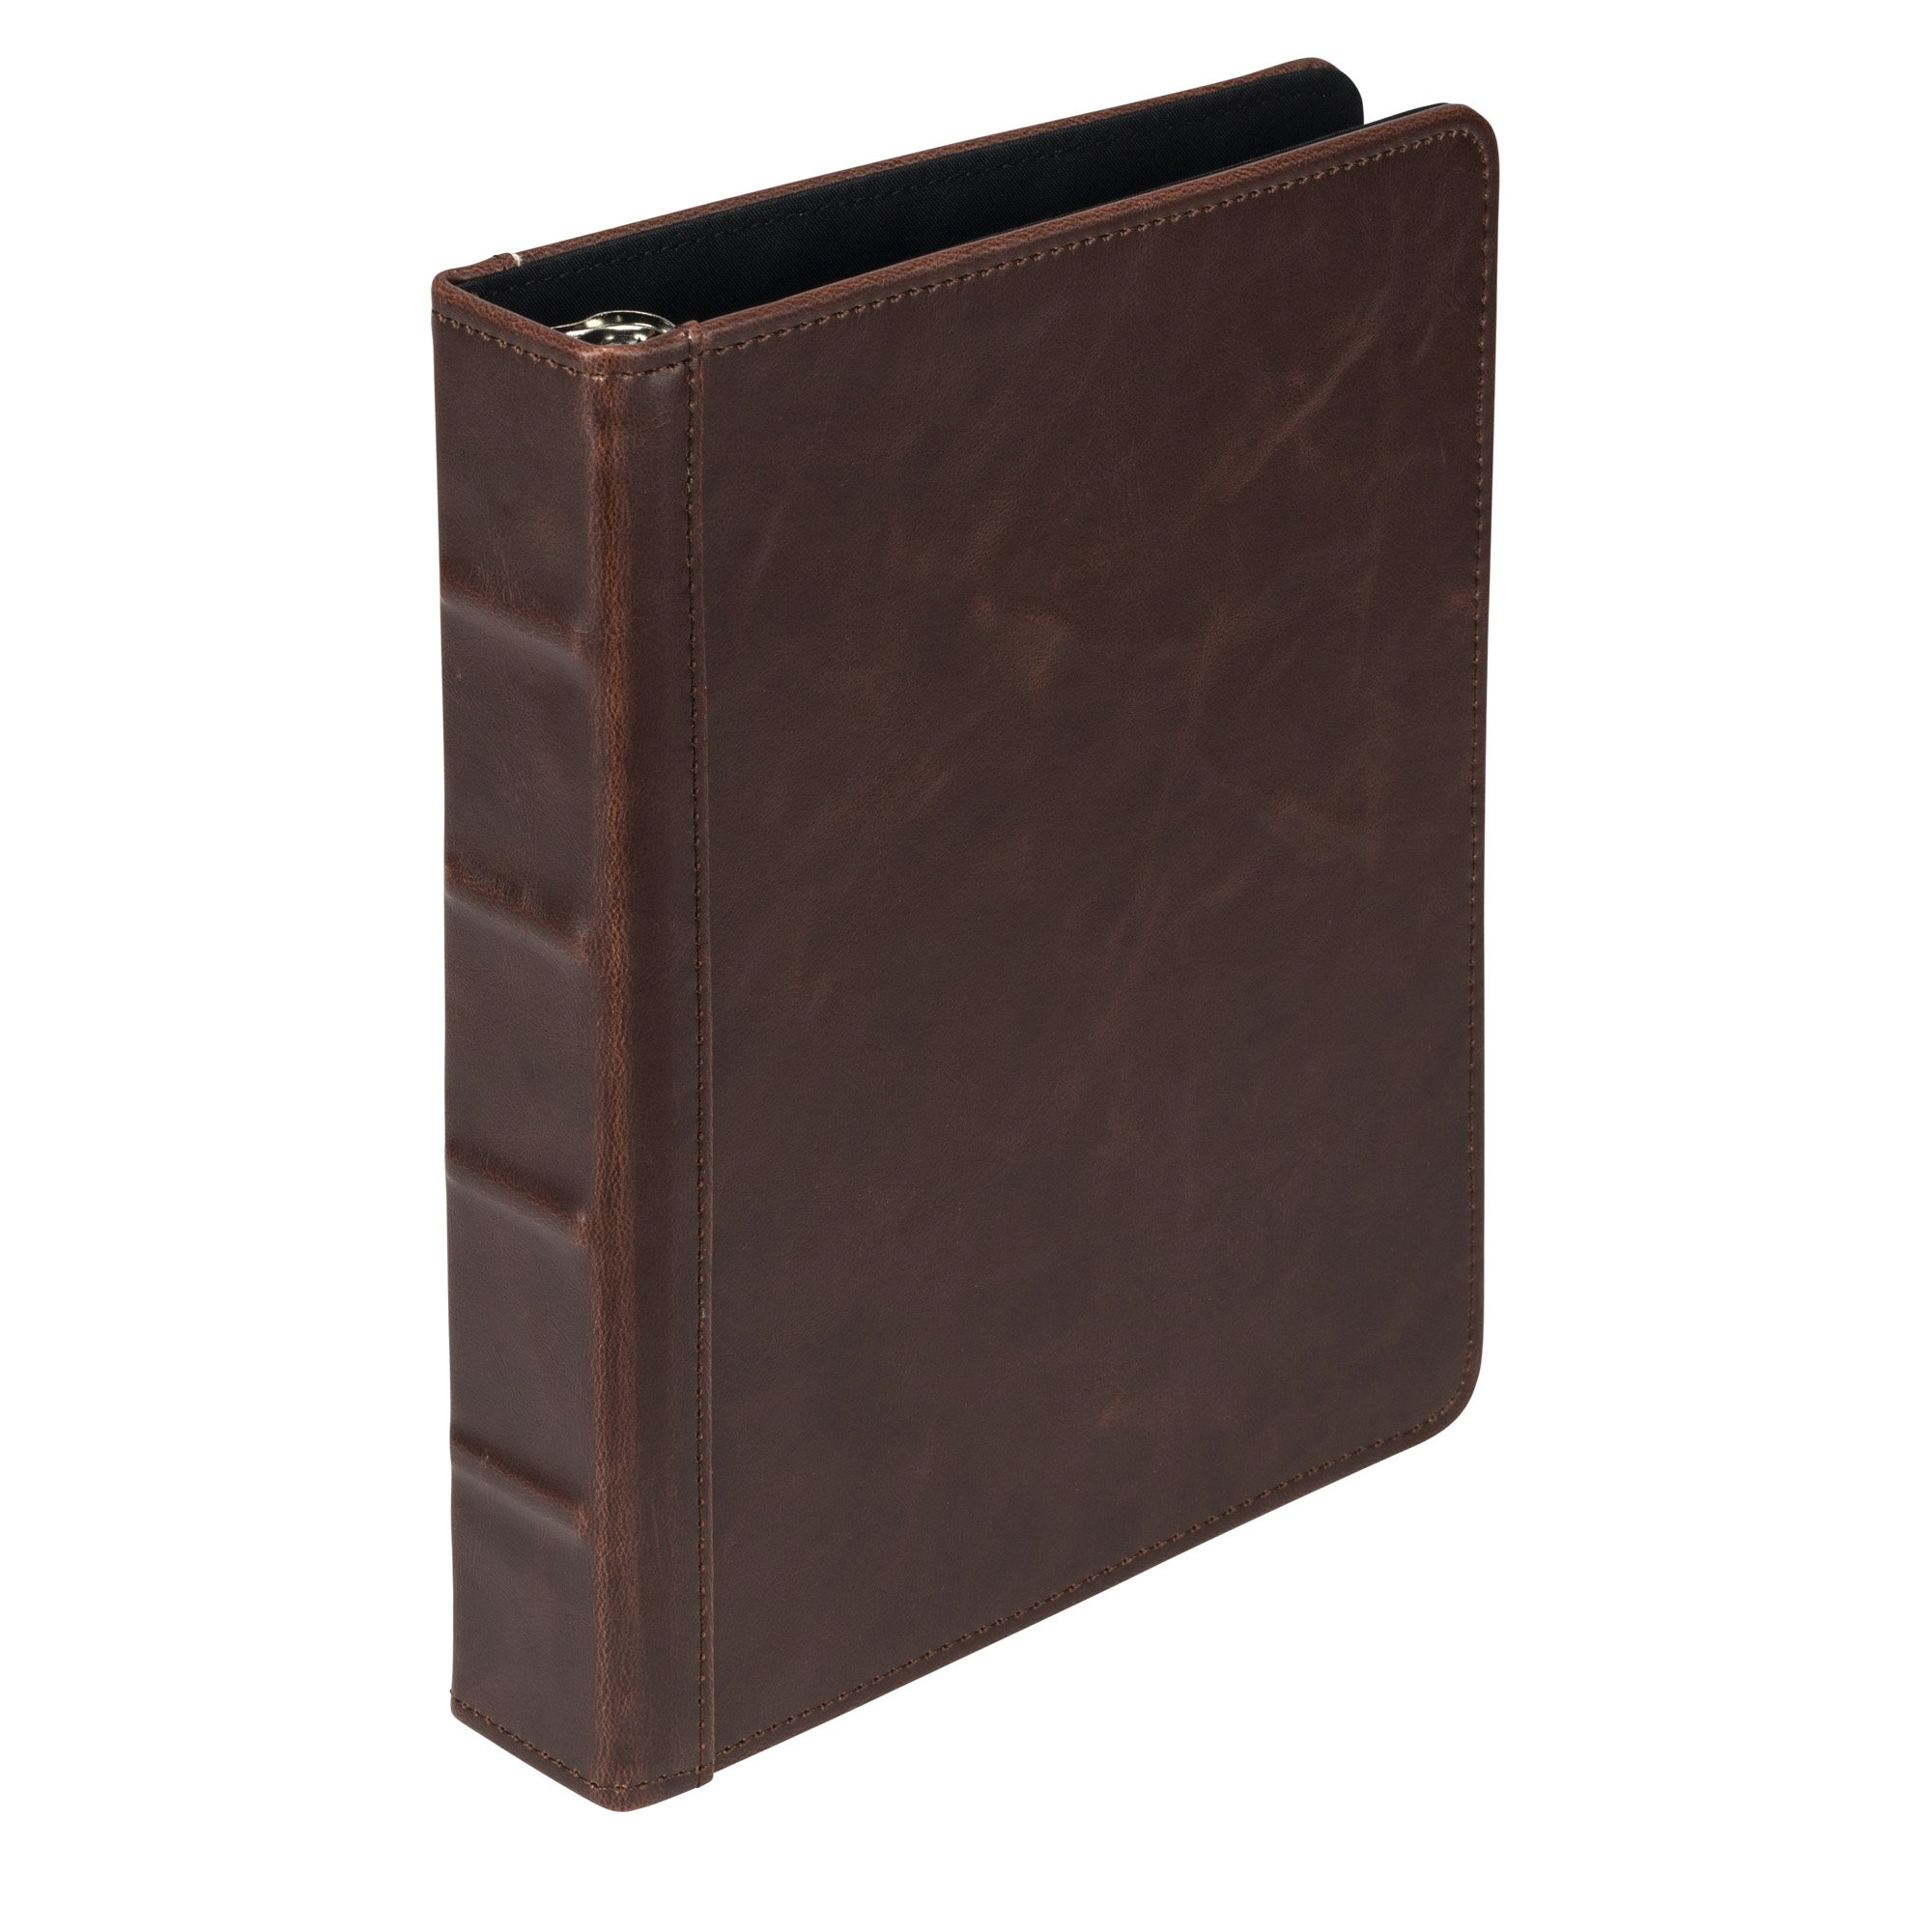 Samsill 5 1/2'' x 8 1/2'' Book Style Mini Ring Binder with 1'' Capacity Rings and No Zipper, Vintage Style Hardback Cover in Dark Brown by Samsill